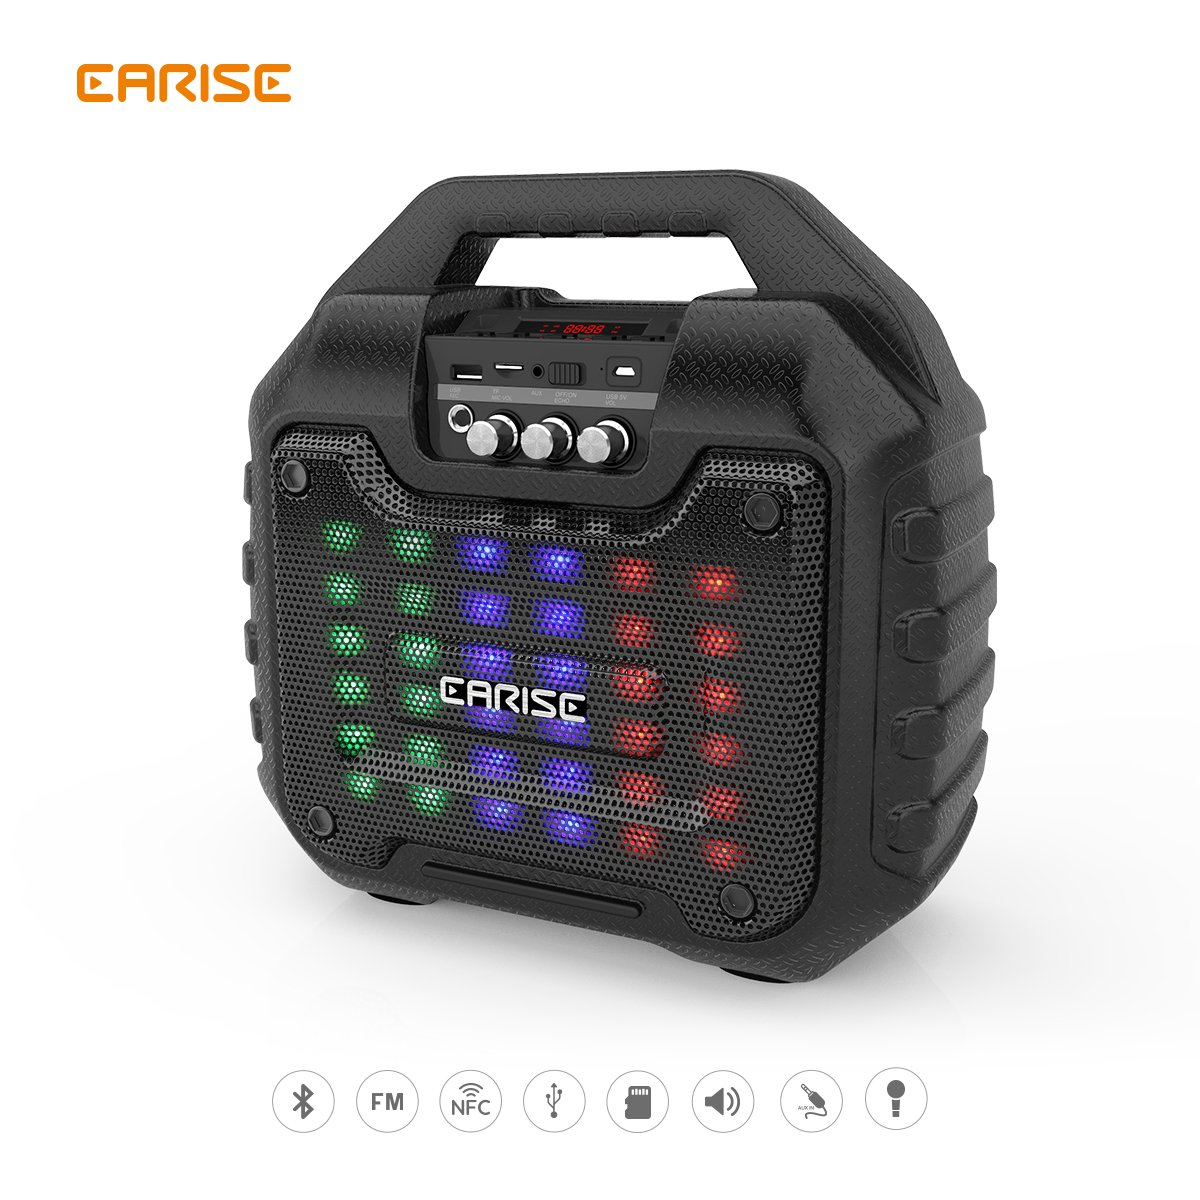 """EARISE B16 Portable Audio PA System   Rechargeable Bluetooth 5.25"""" Speaker   Karaoke Machine  Wireless Microphone   AUX/TF/USB/NFC Support   FM Radio   LED Light"""